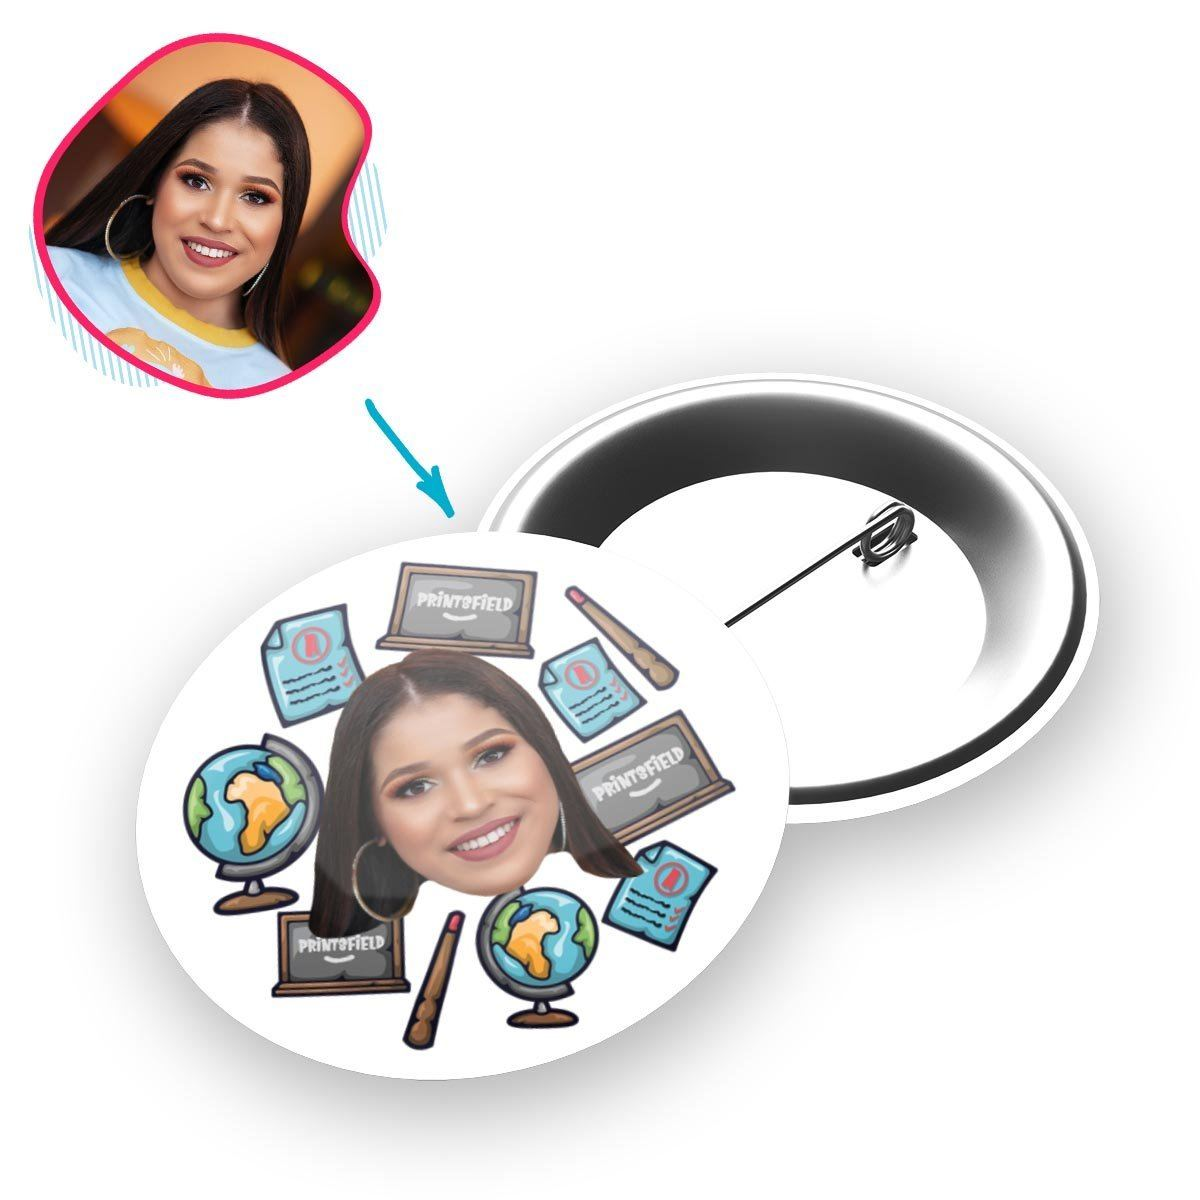 White Teacher personalized pin with photo of face printed on it